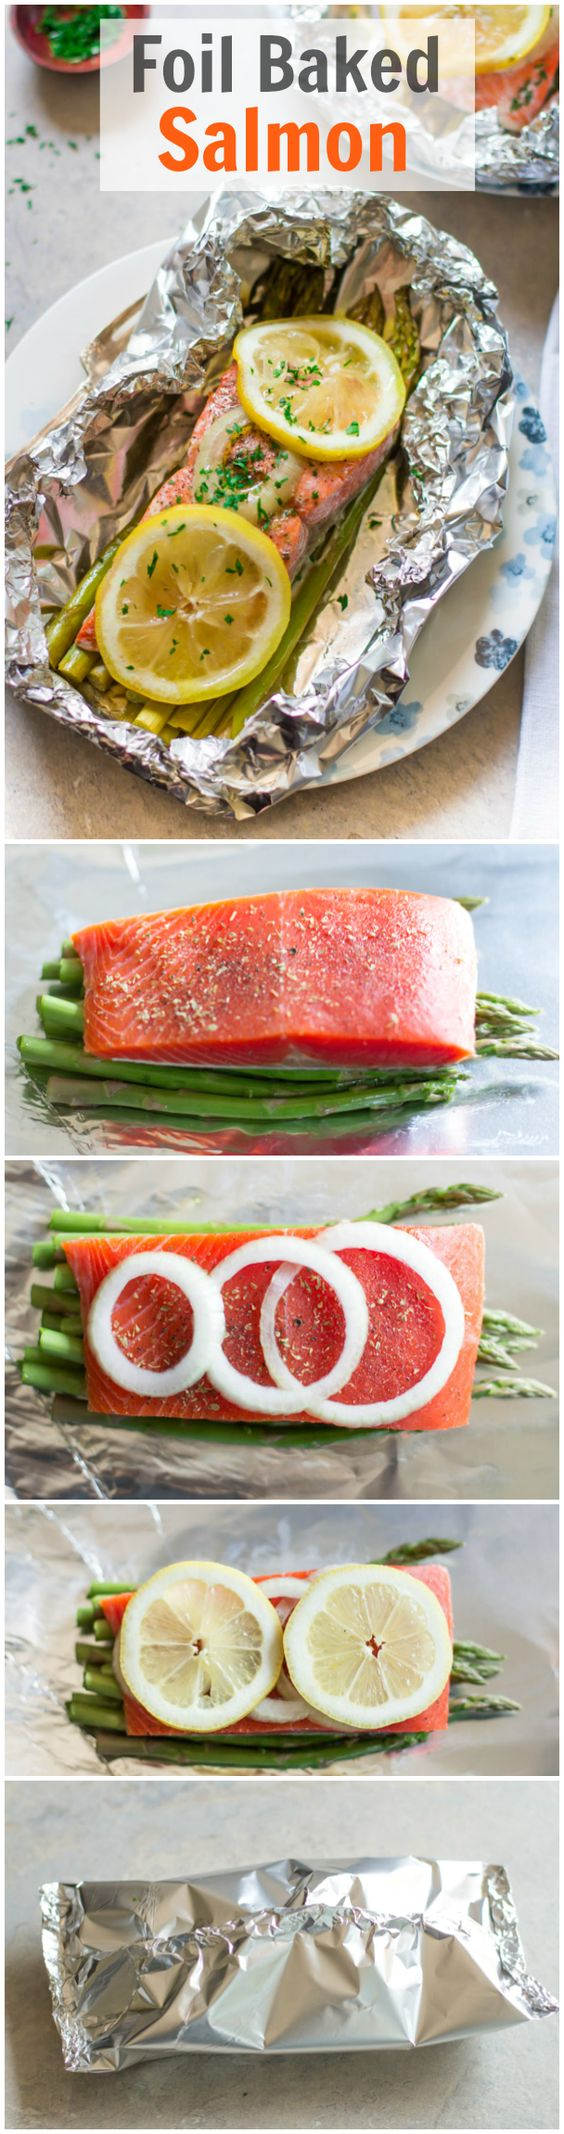 Foil Baked Salmon - You infuse your salmon with lemon, onion, dried oregano and asparagus for a richer flavor. Gluten-free, paleo, and low-carb!: